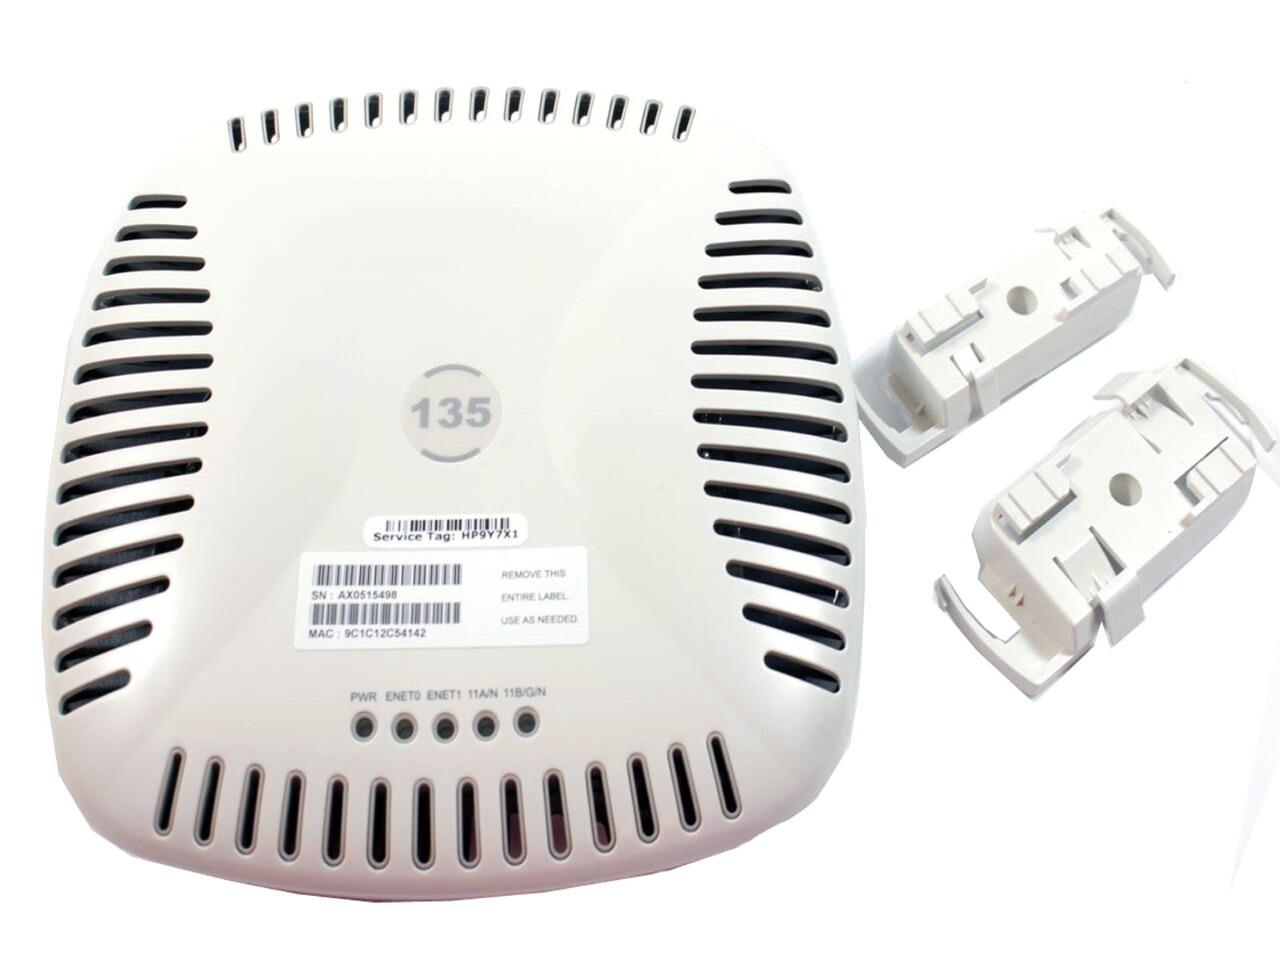 LOT OF 2 Aruba AP-124  IEEE 802.11a//b//g//n Dual Band Indoor Wireless Access Point